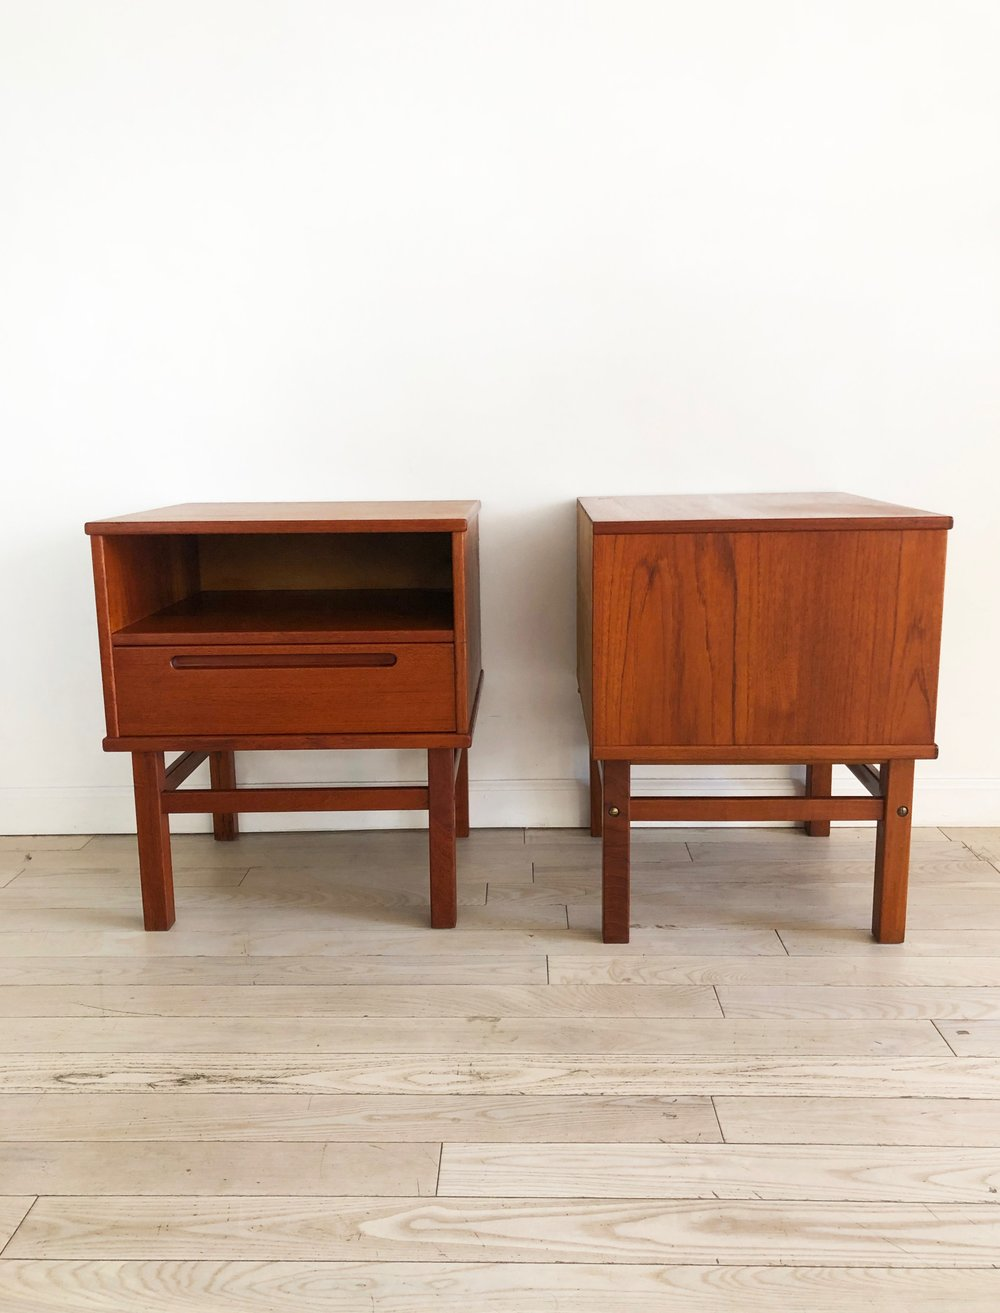 Pair of Mid Century Teak Danish Nightstands by Nils Jonsson for HJN Mobler